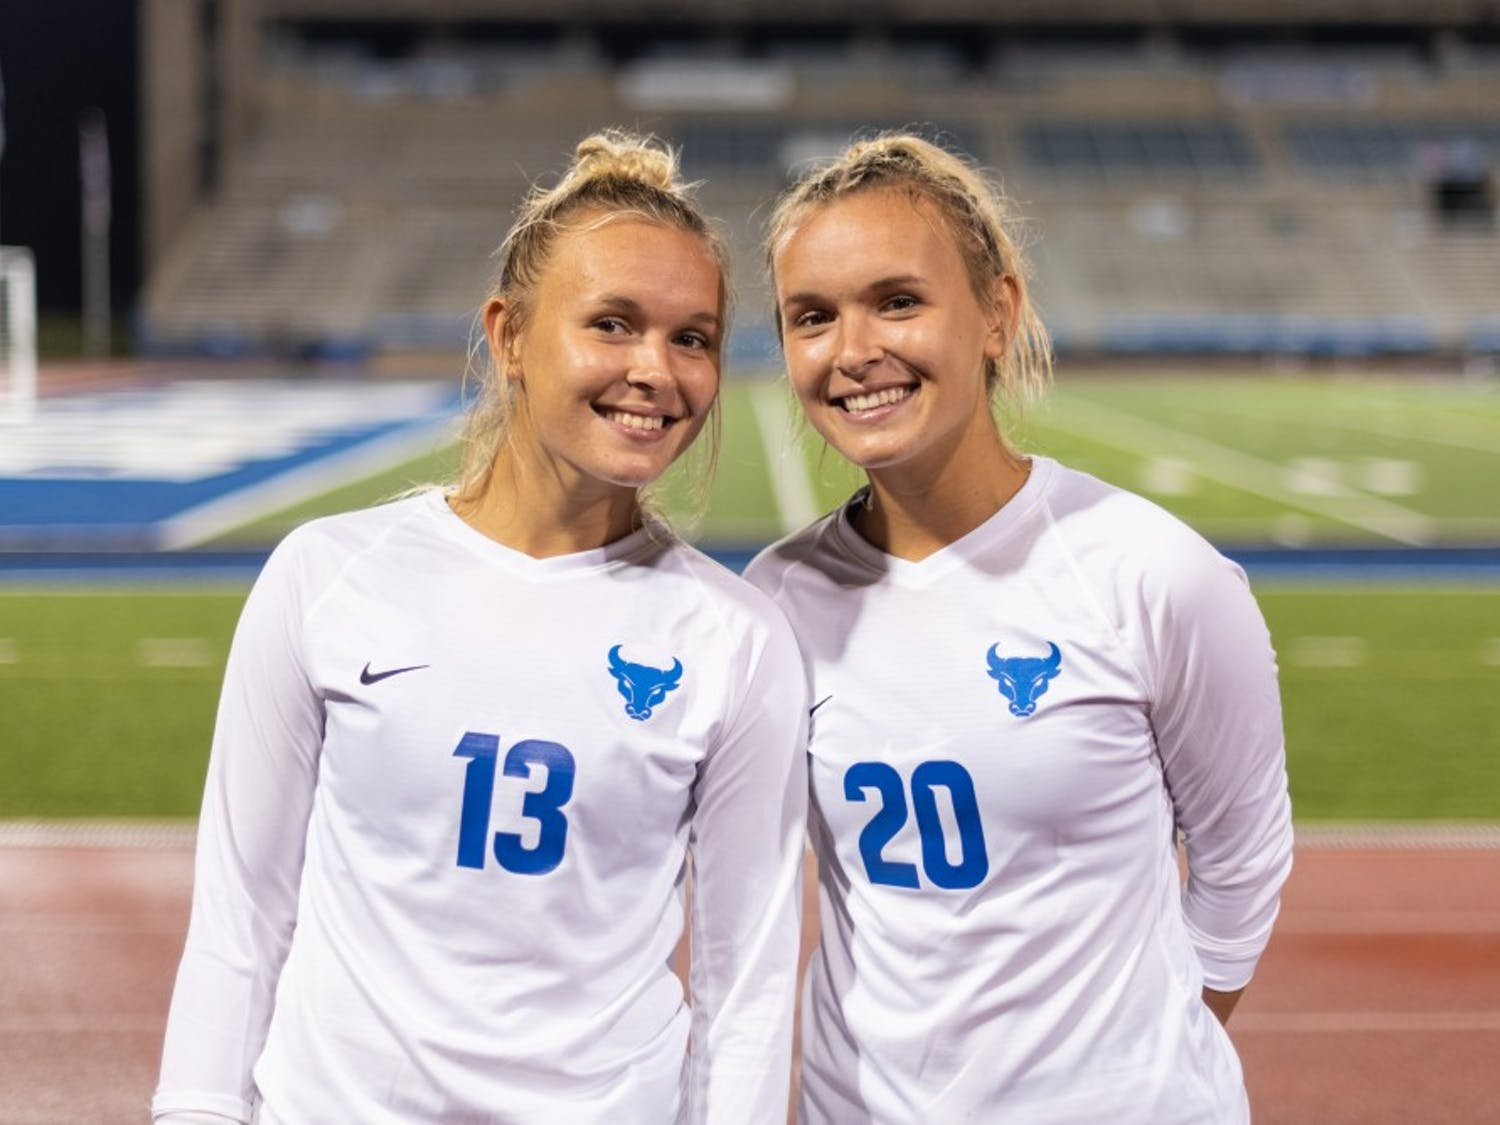 The Callaghan twins pose after a Sept. 6 victory against Houston Baptist at UB Stadium.